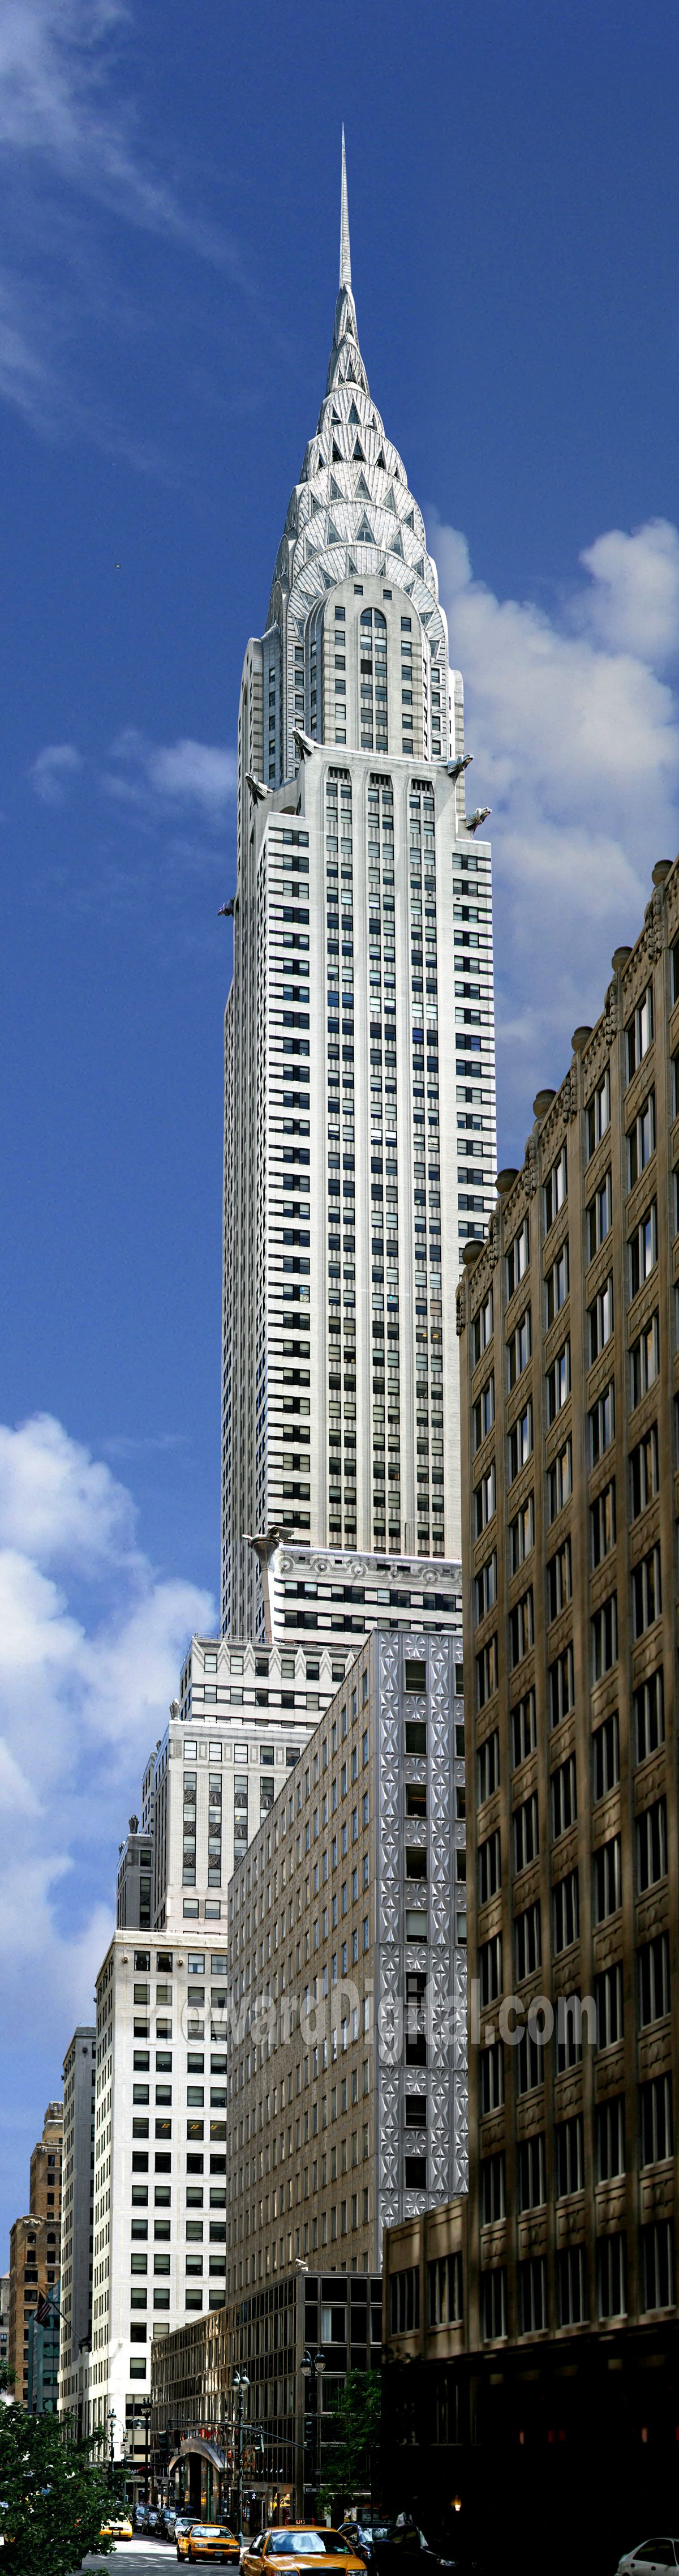 Chrysler Building, 1930, 319 m. Astrogeographical position